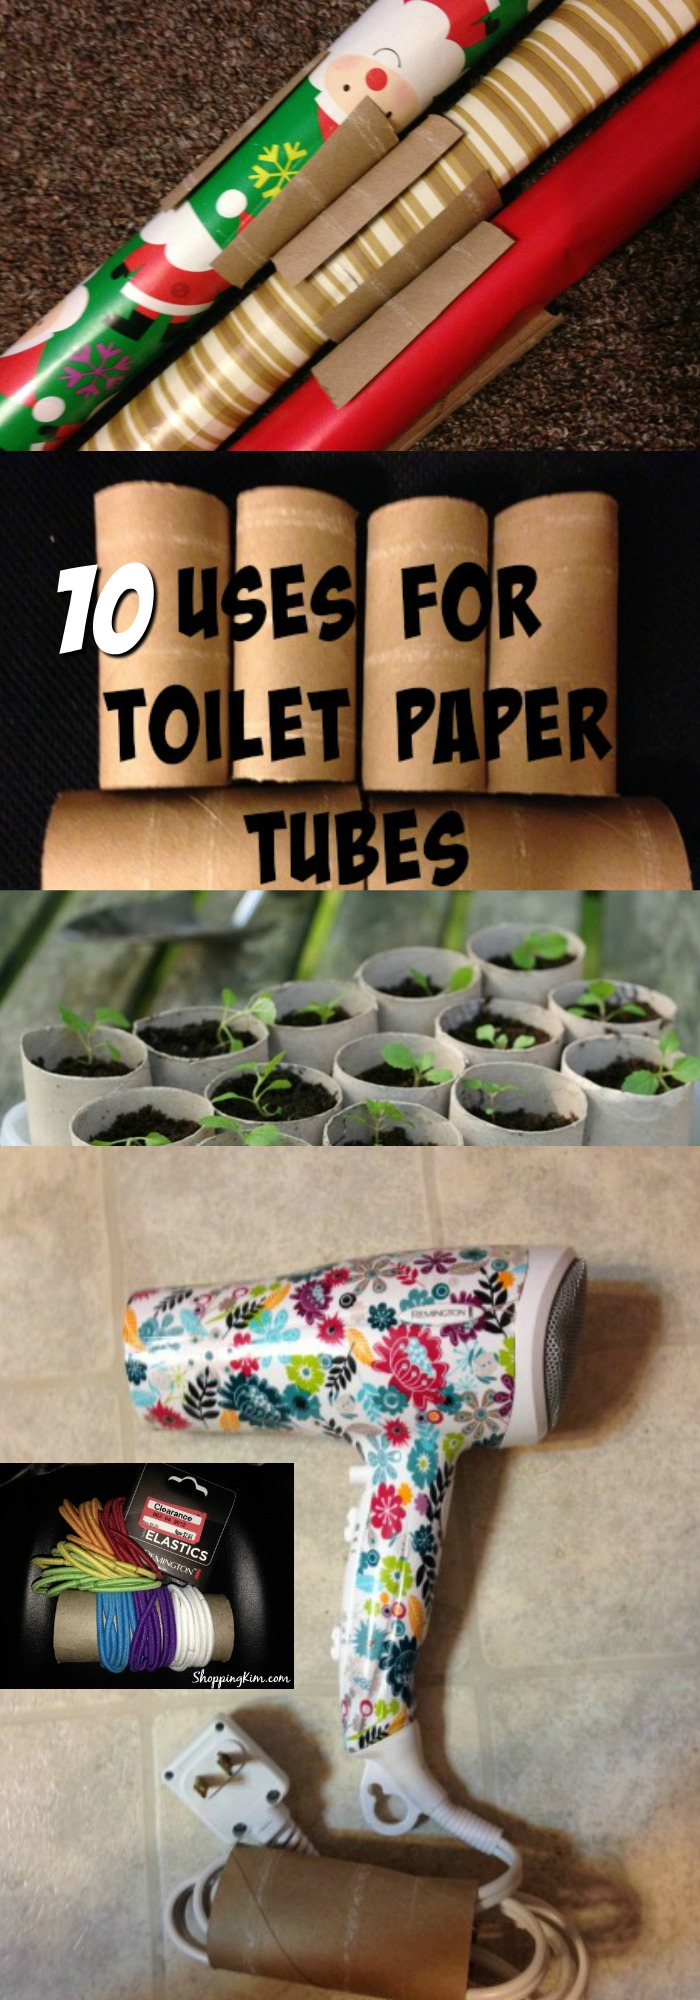 Ten Uses For Toilet Paper Tubes